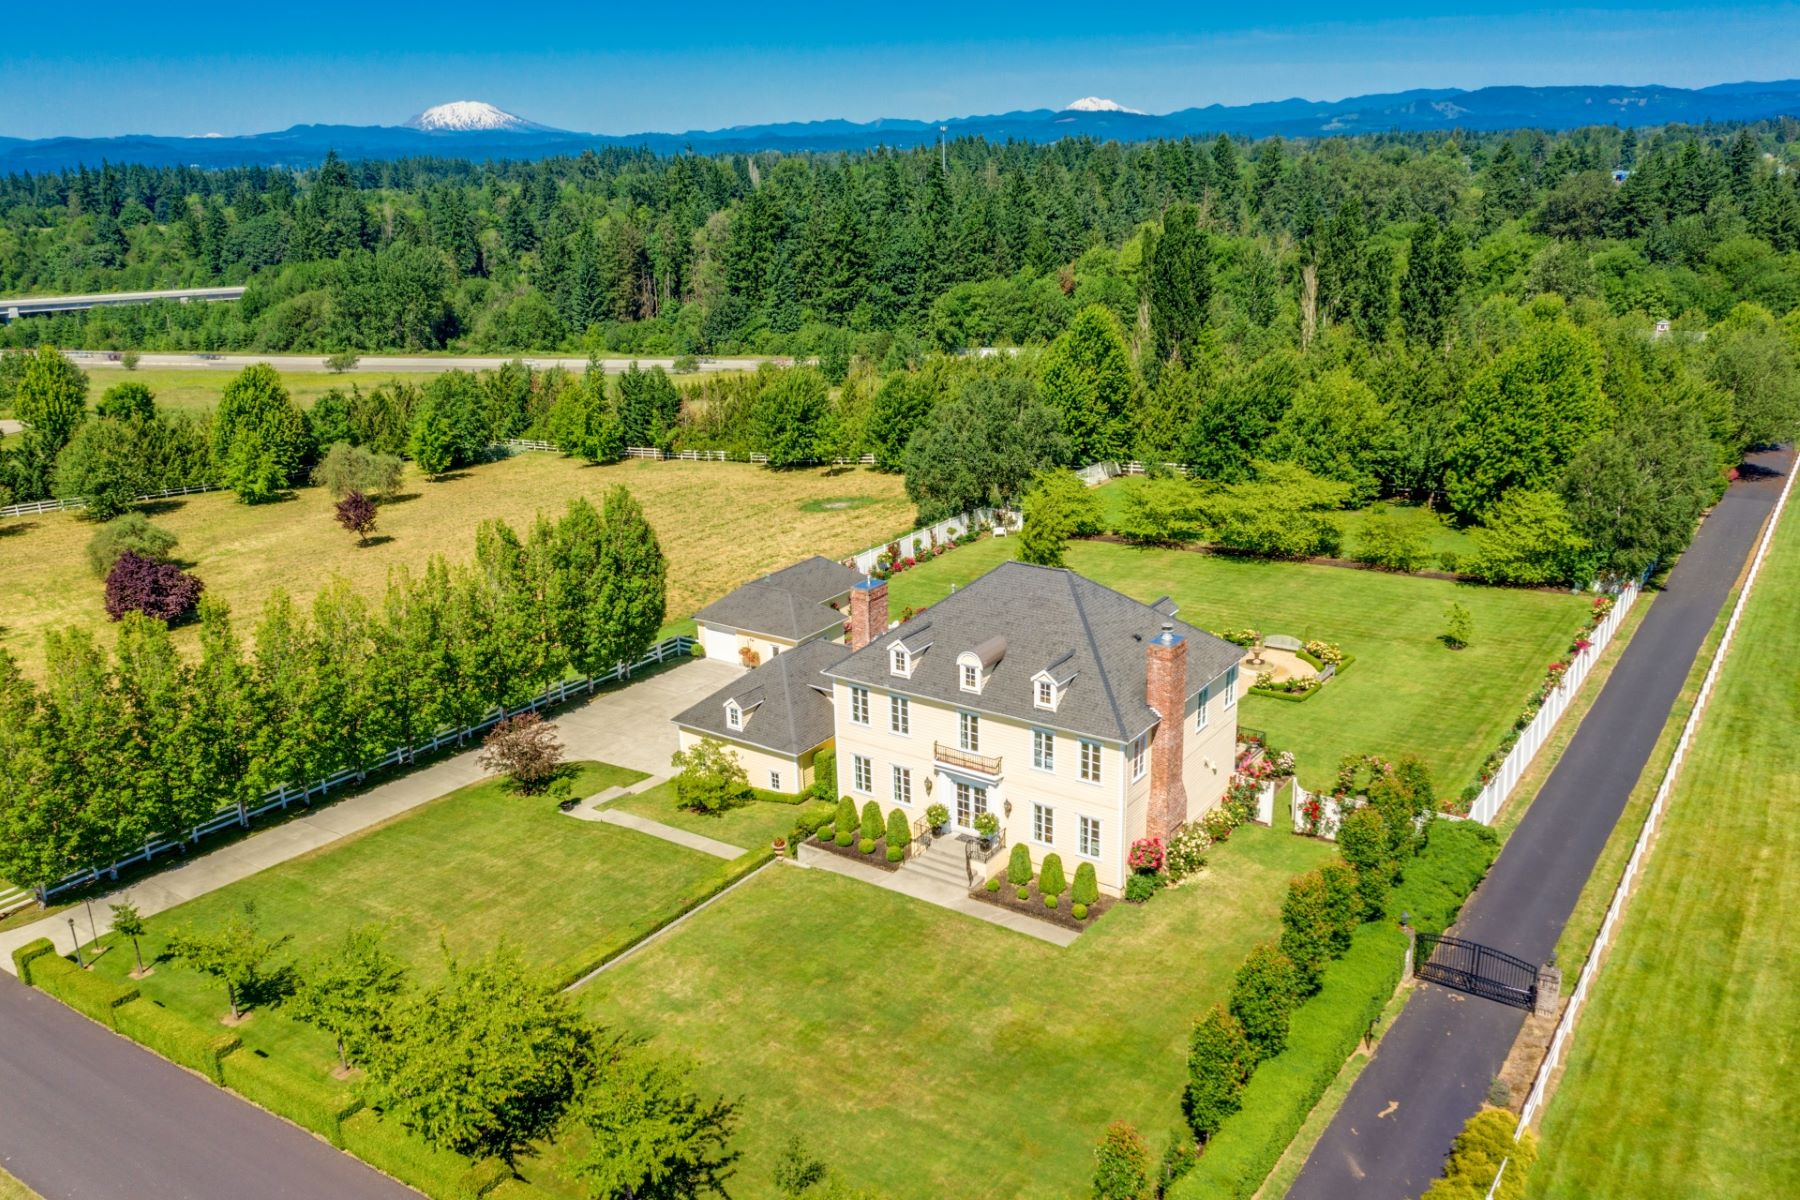 Single Family Homes for Sale at Exquisite Georgian Estate on 5 Acre 21501 NW 5TH AVE Ridgefield, Washington 98642 United States